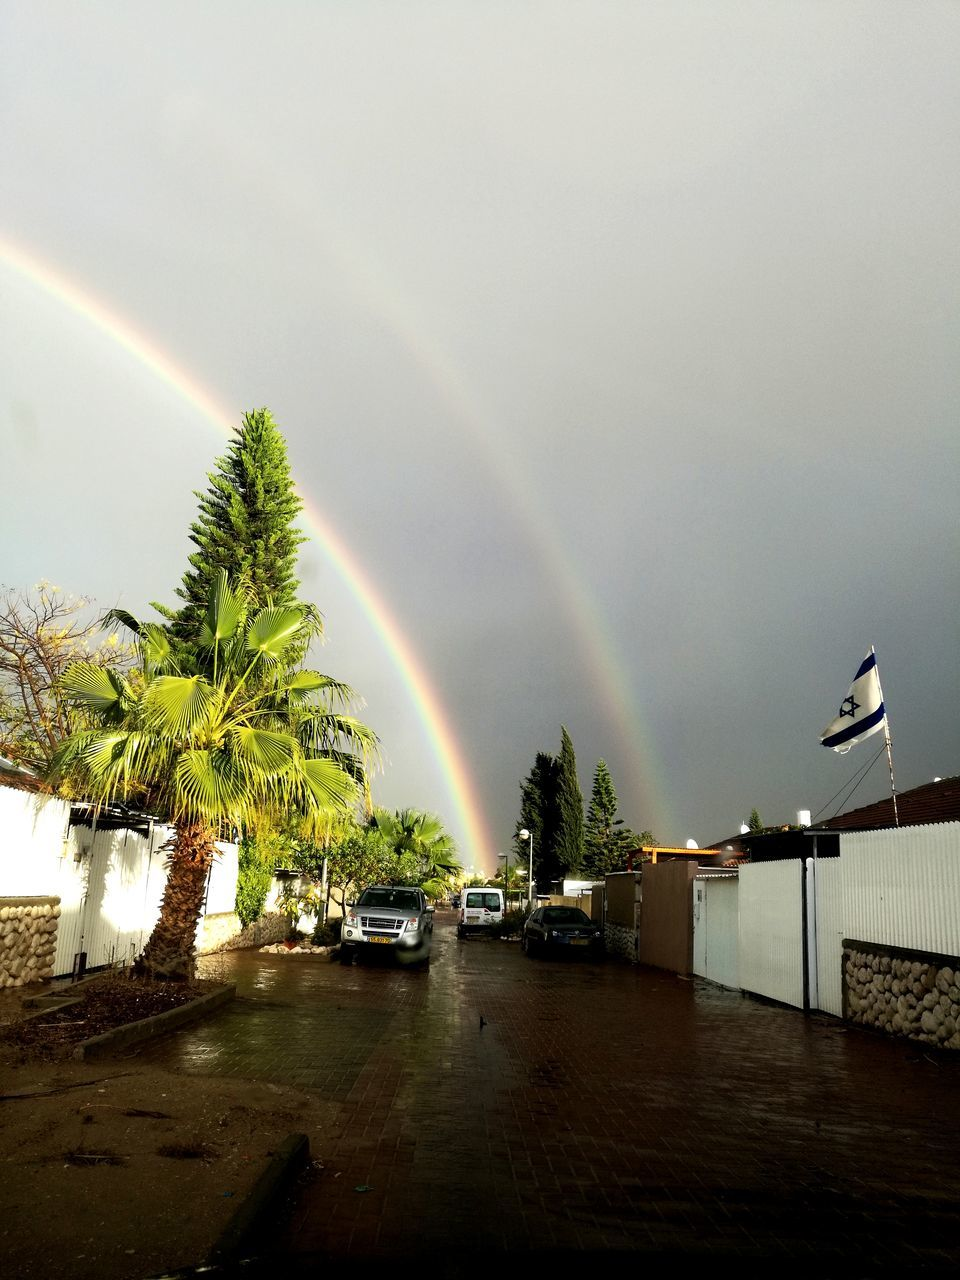 rainbow, double rainbow, weather, nature, beauty in nature, no people, tree, palm tree, built structure, scenics, outdoors, water, architecture, day, sky, building exterior